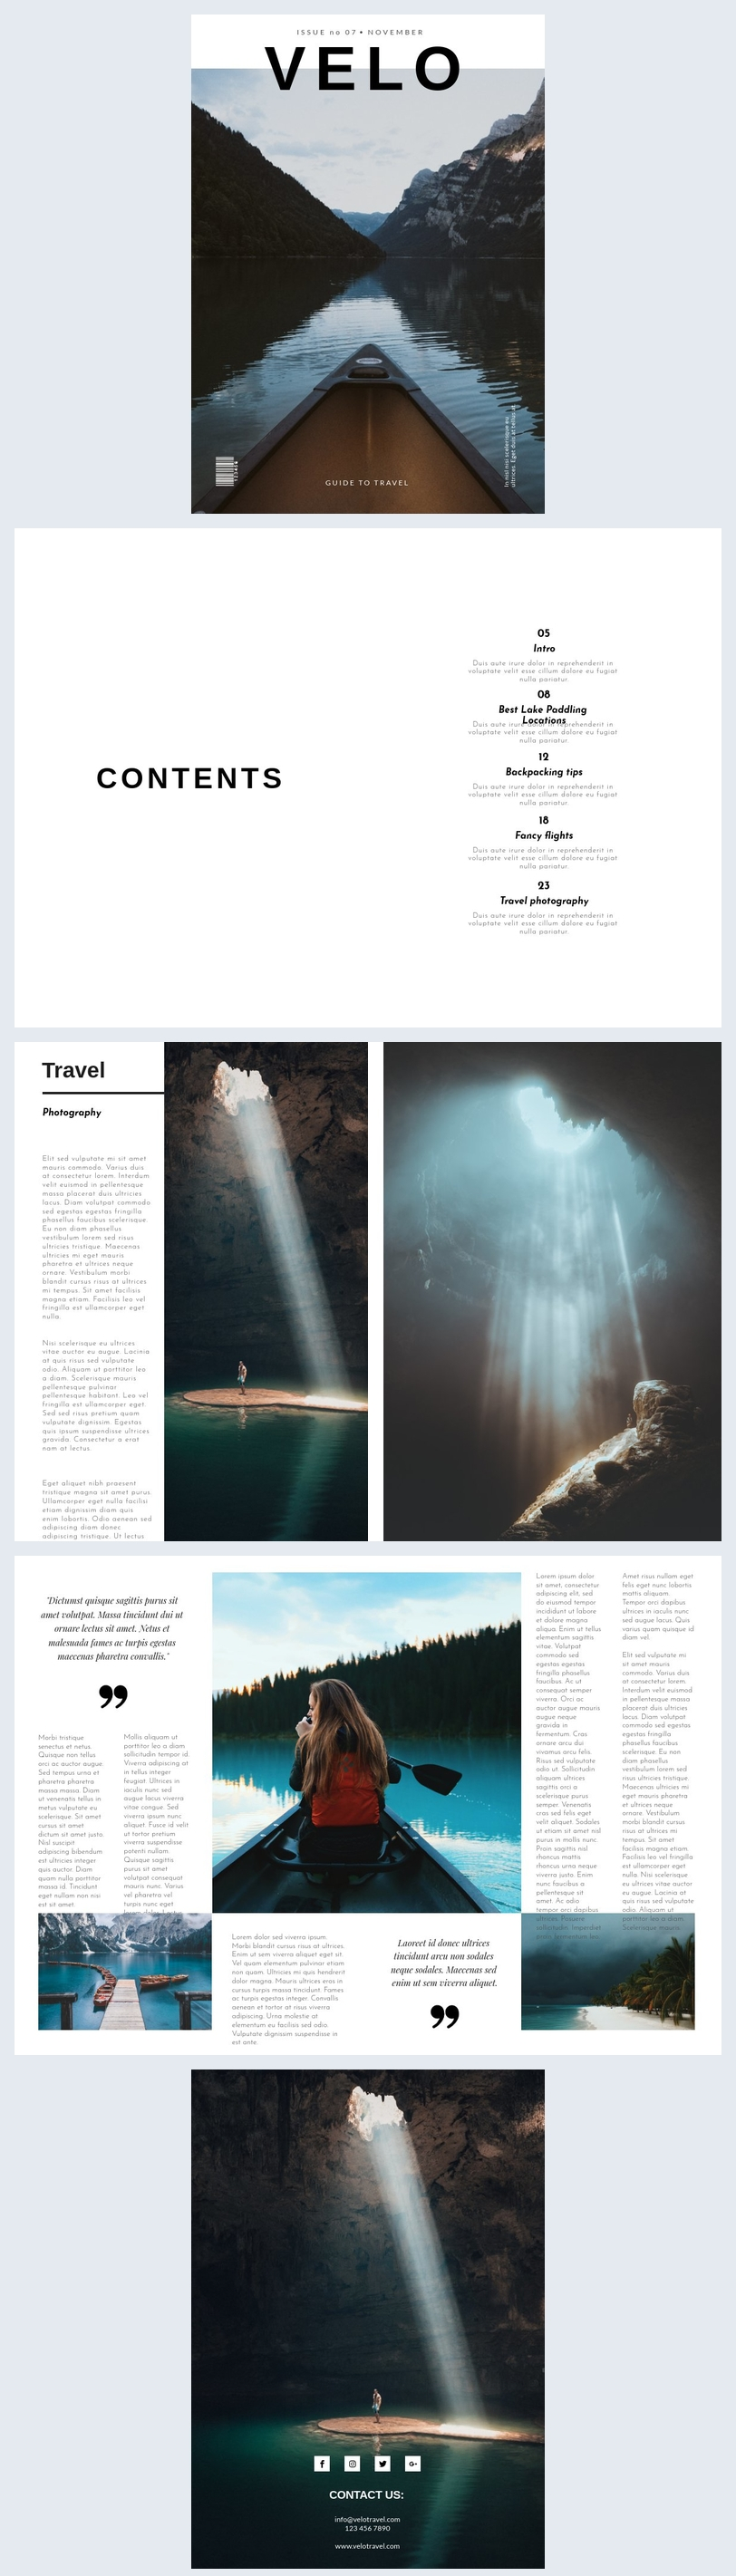 Minimalist Travel Magazine Template Design